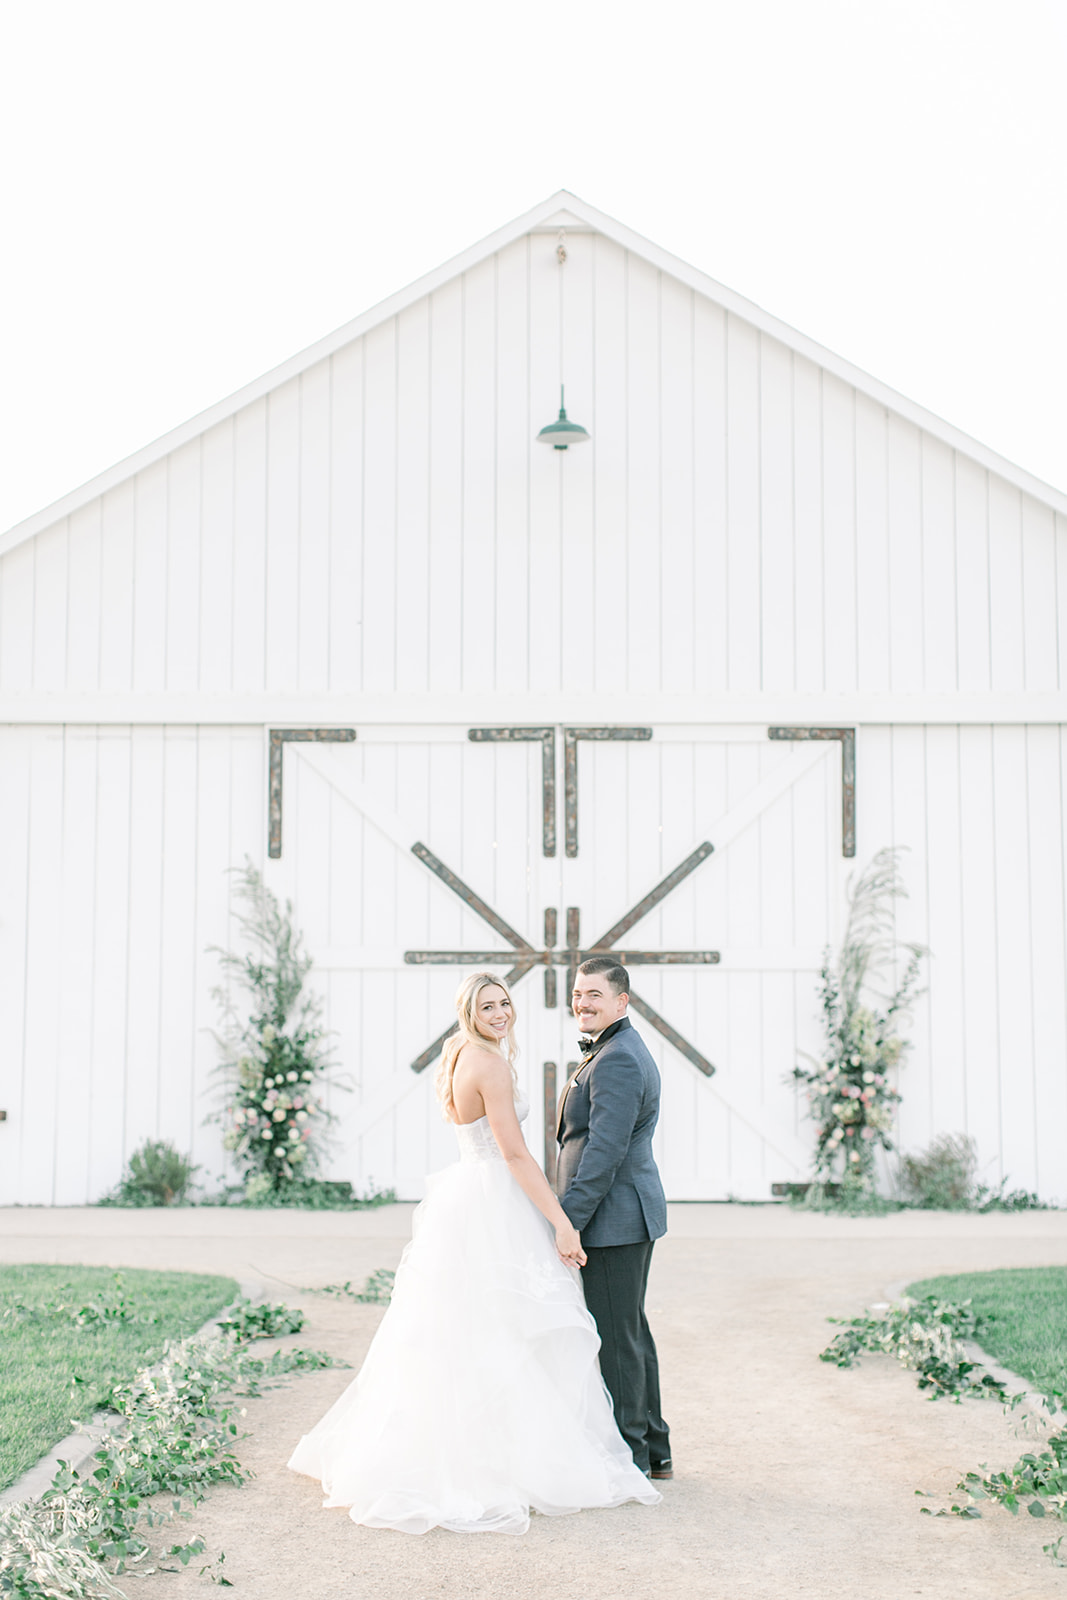 A Fresh and Modern Country Wedding at The White Barn in Edna Valley | The Wedding Standard